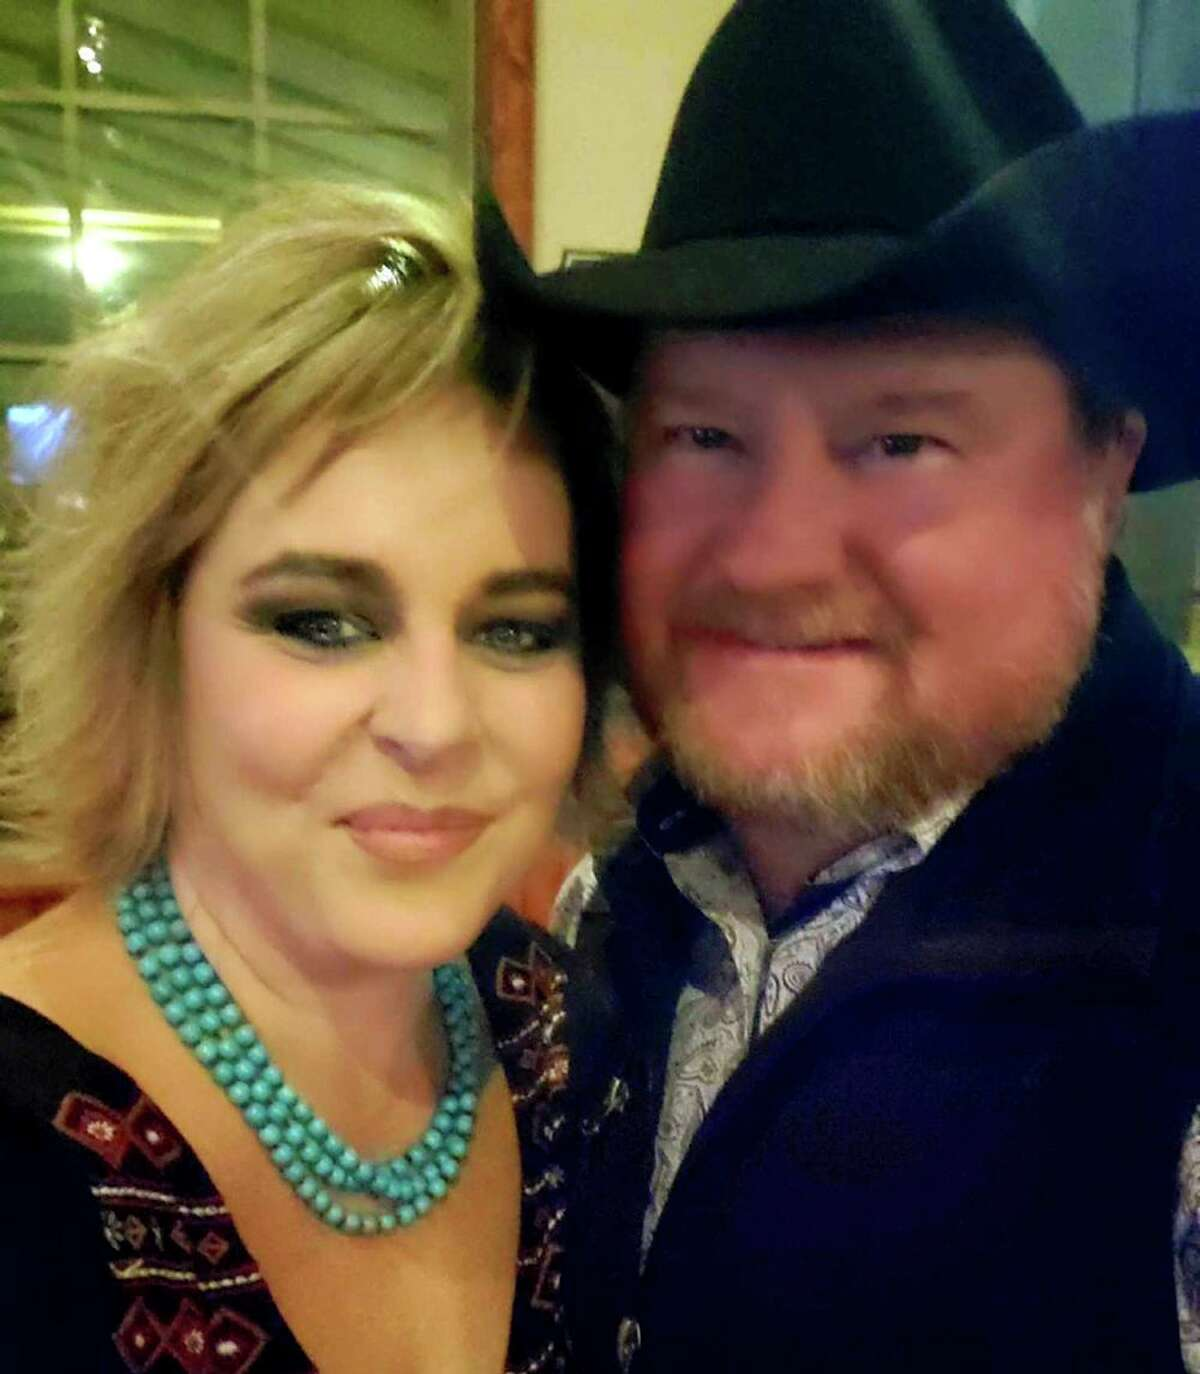 Jimmie Hayden was the first COVID-19 patient to receive plasma therapy in San Antonio. He is pictured with his wife, Ashley Hayden.